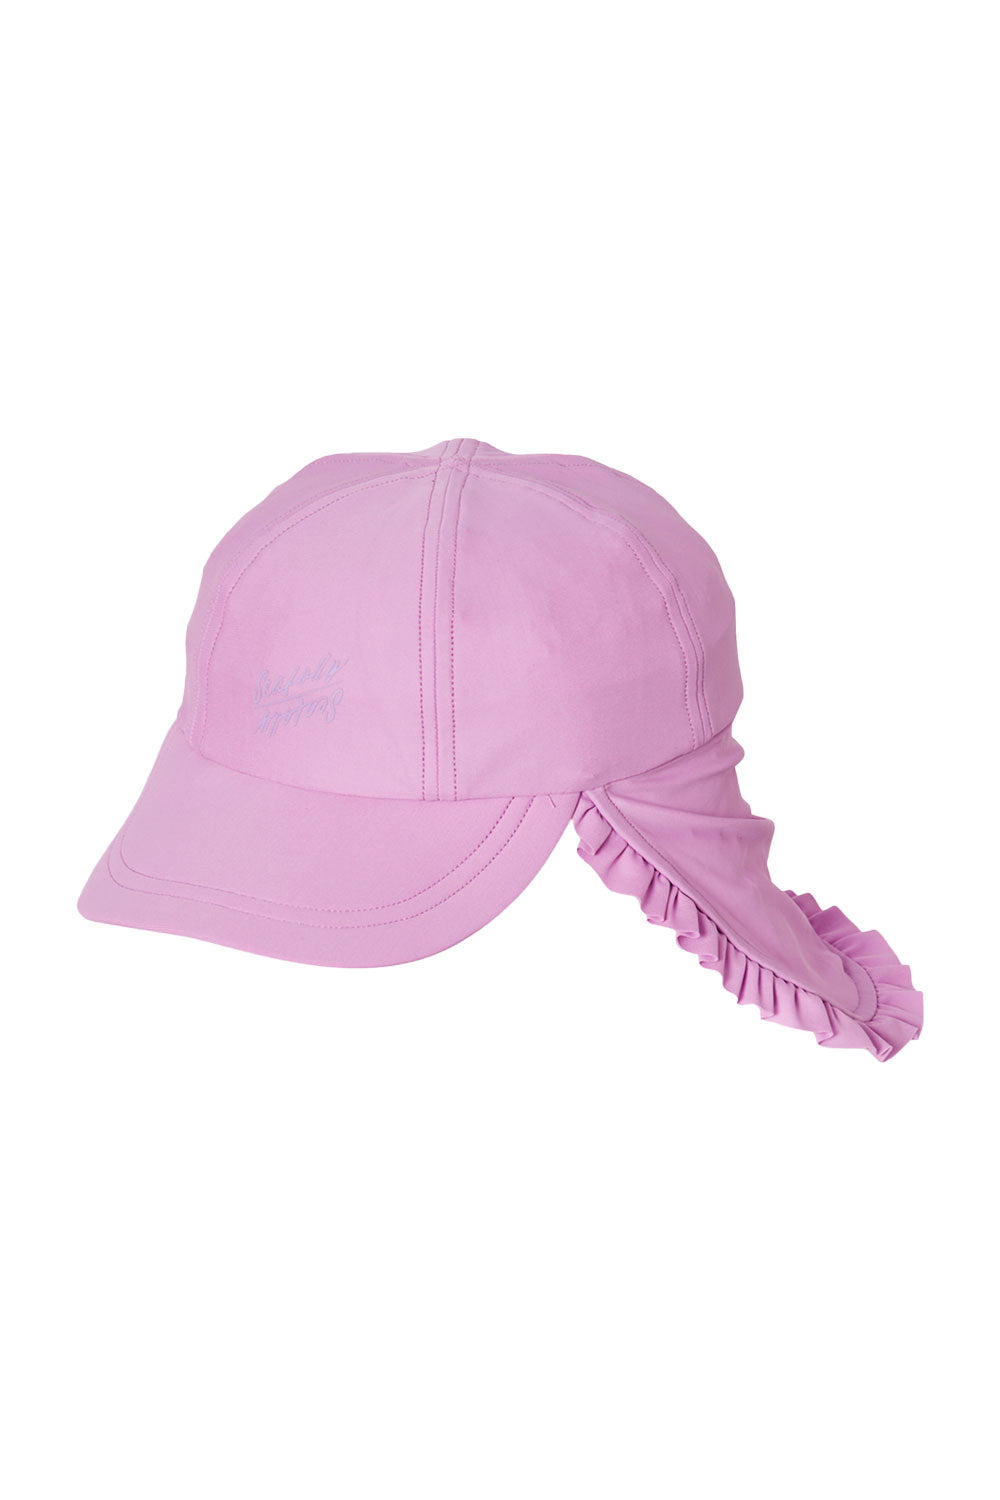 Seafolly Kids Beach Flyer Hat - Lavender